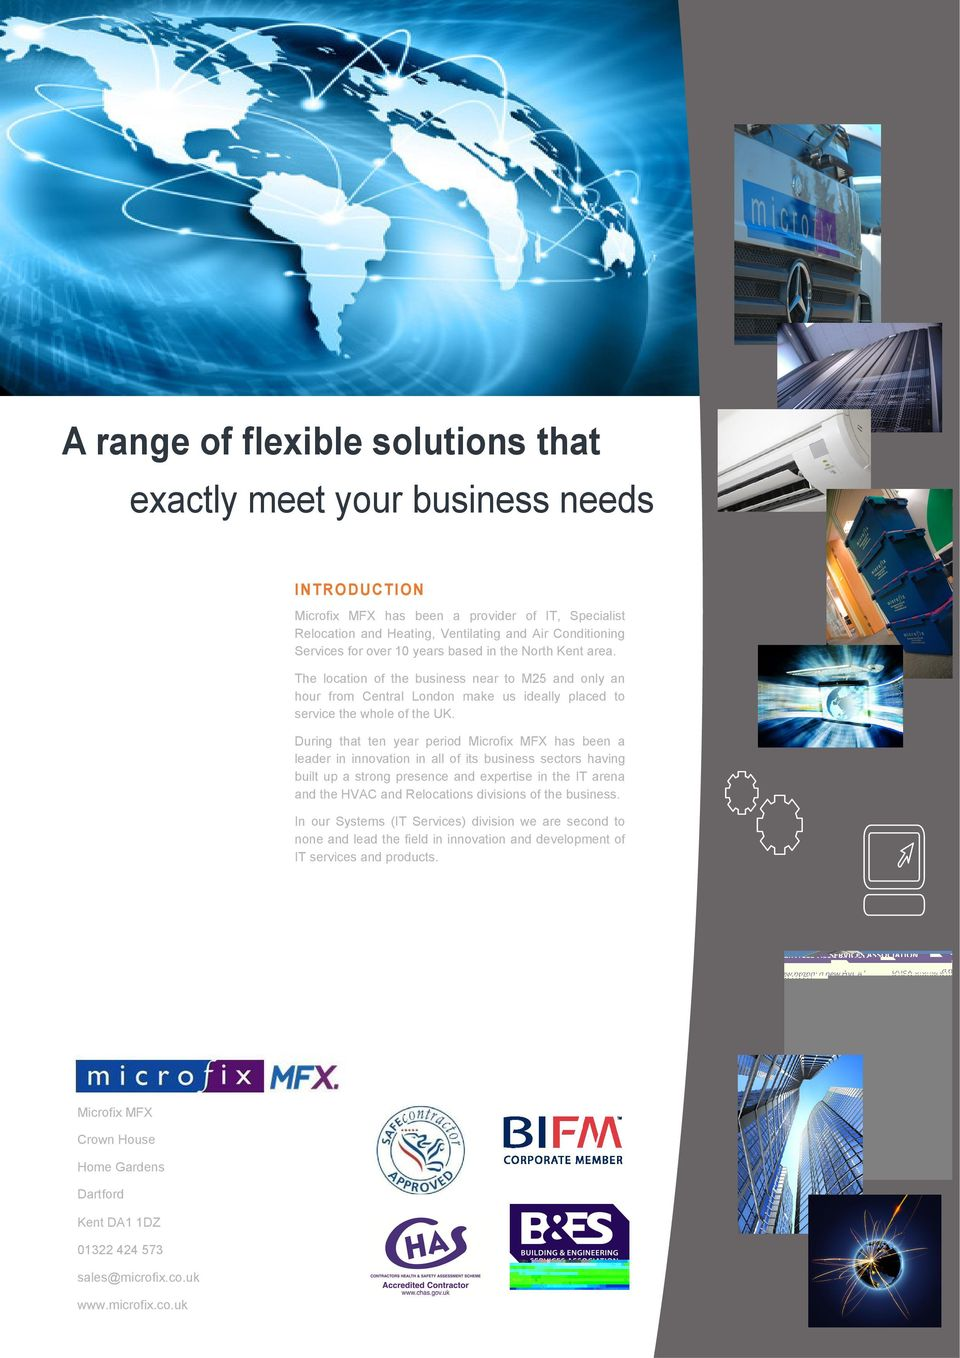 During that ten year period Microfix MFX has been a leader in innovation in all of its business sectors having built up a strong presence and expertise in the IT arena and the HVAC and Relocations